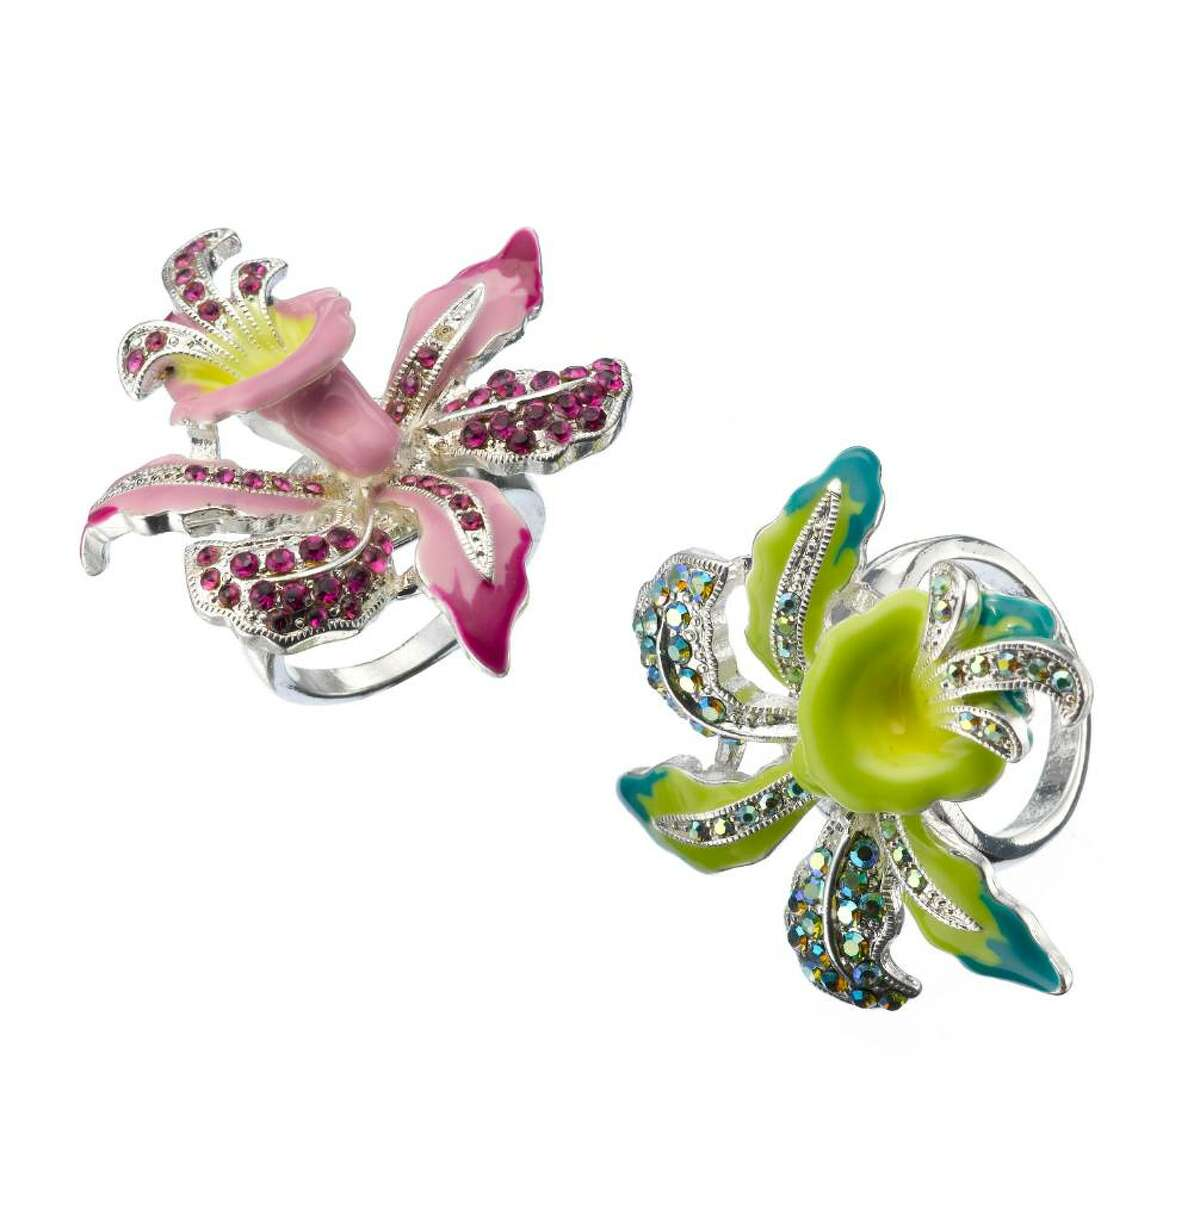 Decorative pins, such as these from Macy?s, are an easy way to add chartreuse to your wardrobe. (Macy's)